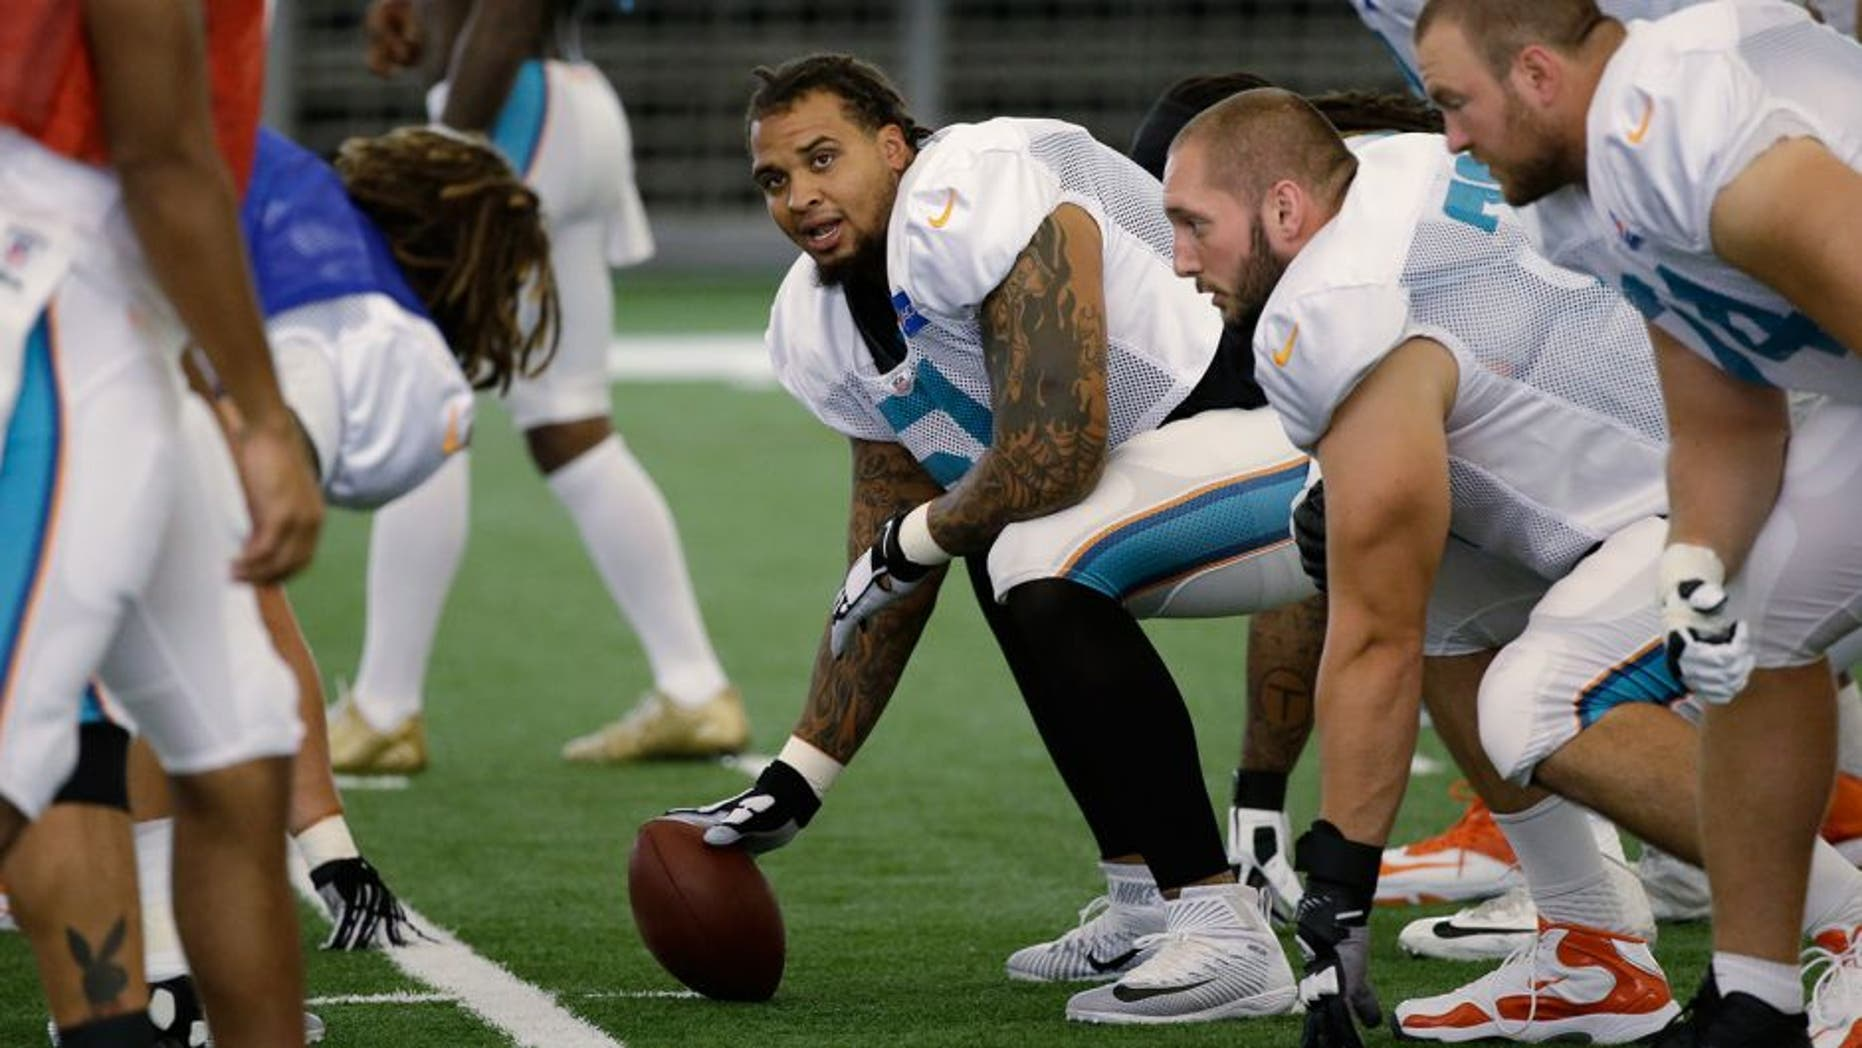 Miami Dolphins center Mike Pouncey, center, prepares to snap the ball at the teams NFL football training camp, Wednesday, Aug. 5, 2015, in Davie, Fla. (AP Photo/Wilfredo Lee)